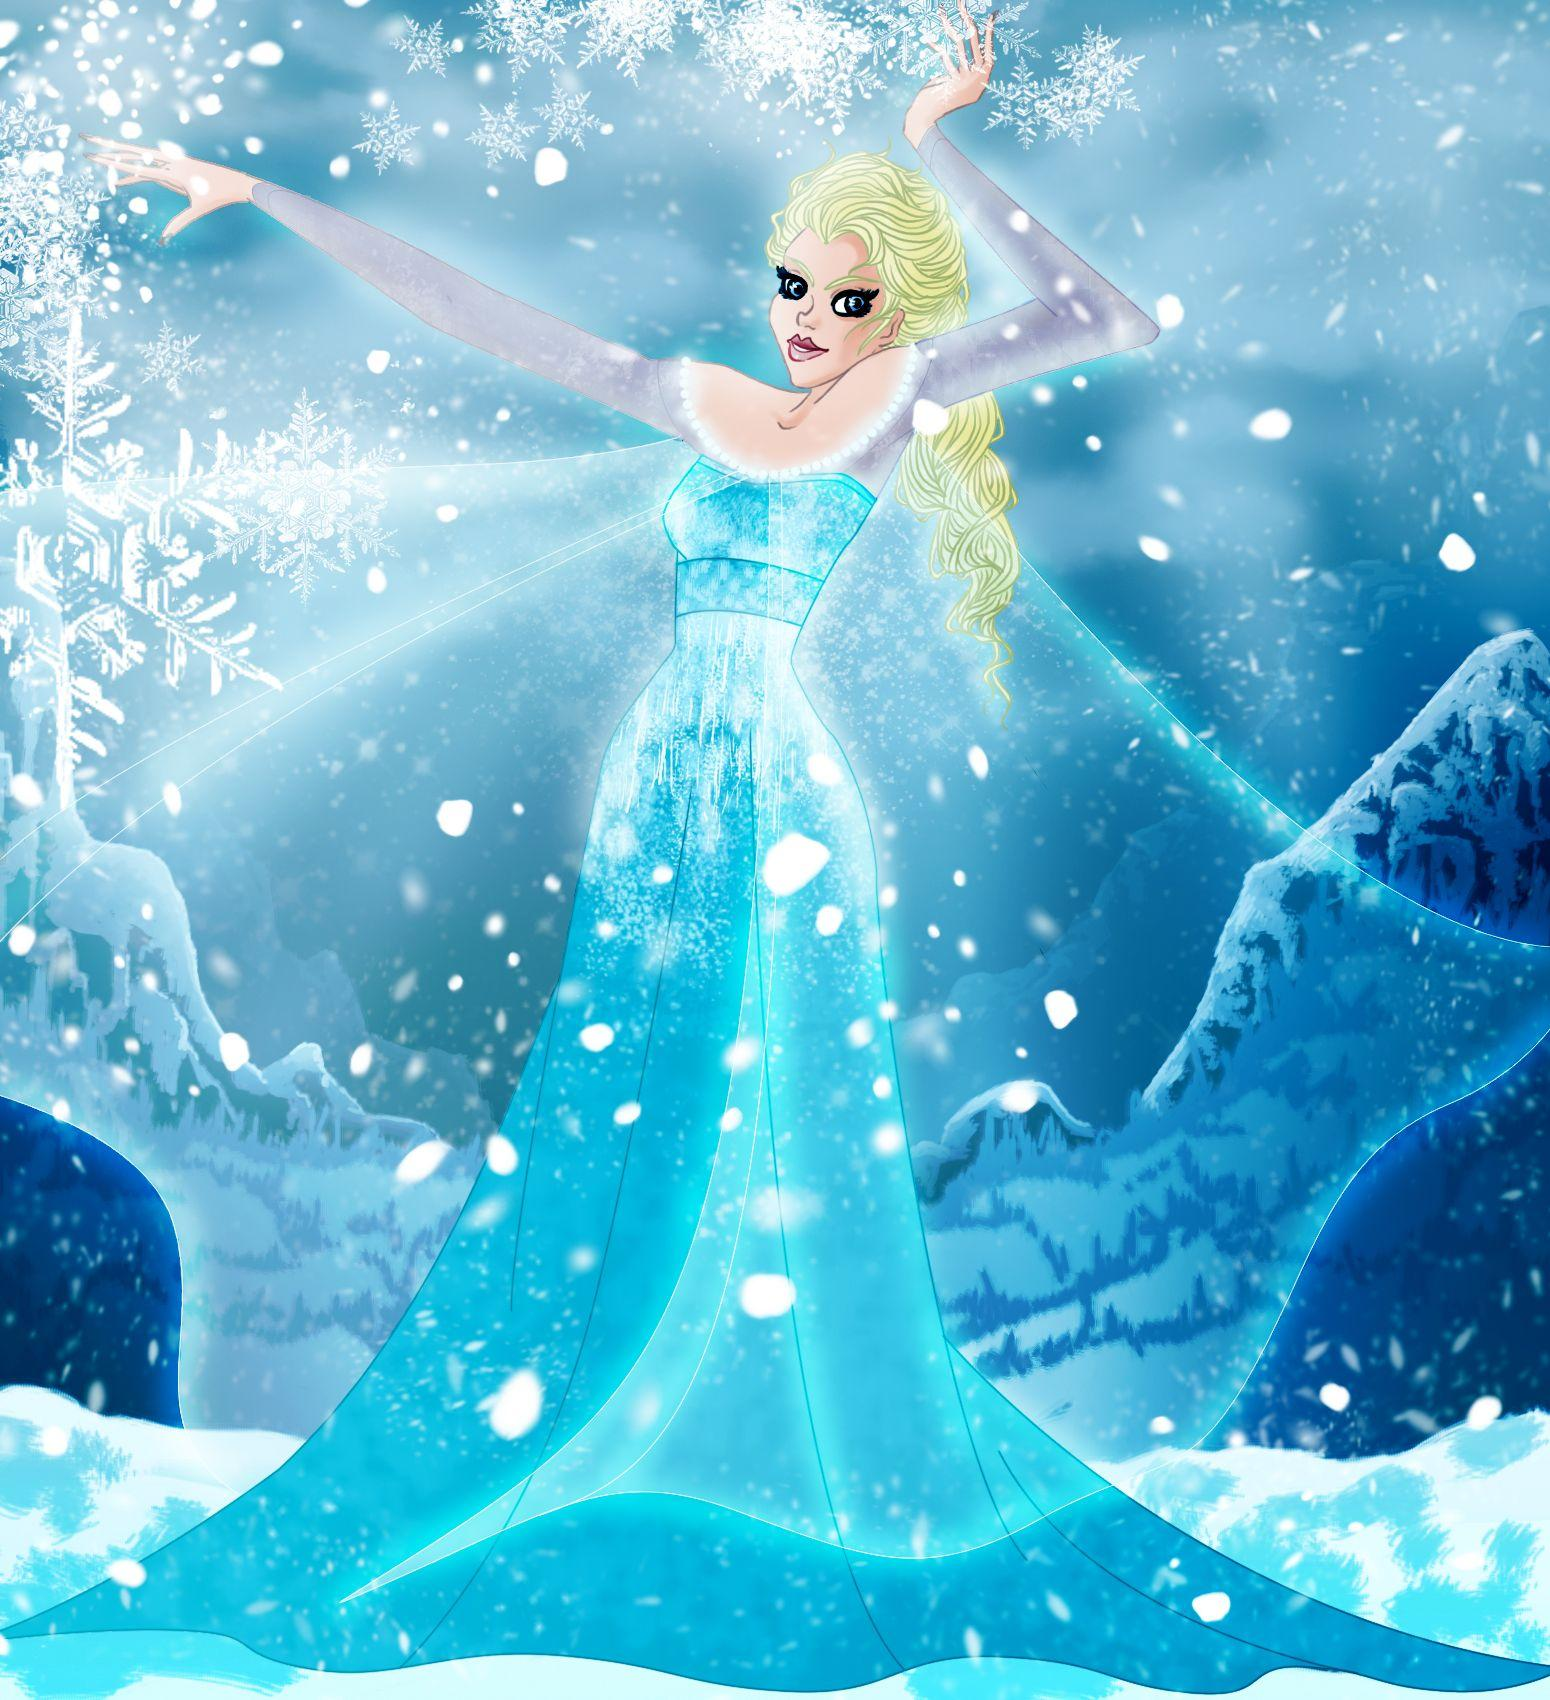 Frozen elsa wallpapers wallpaper cave - Frozen cartoon wallpaper ...